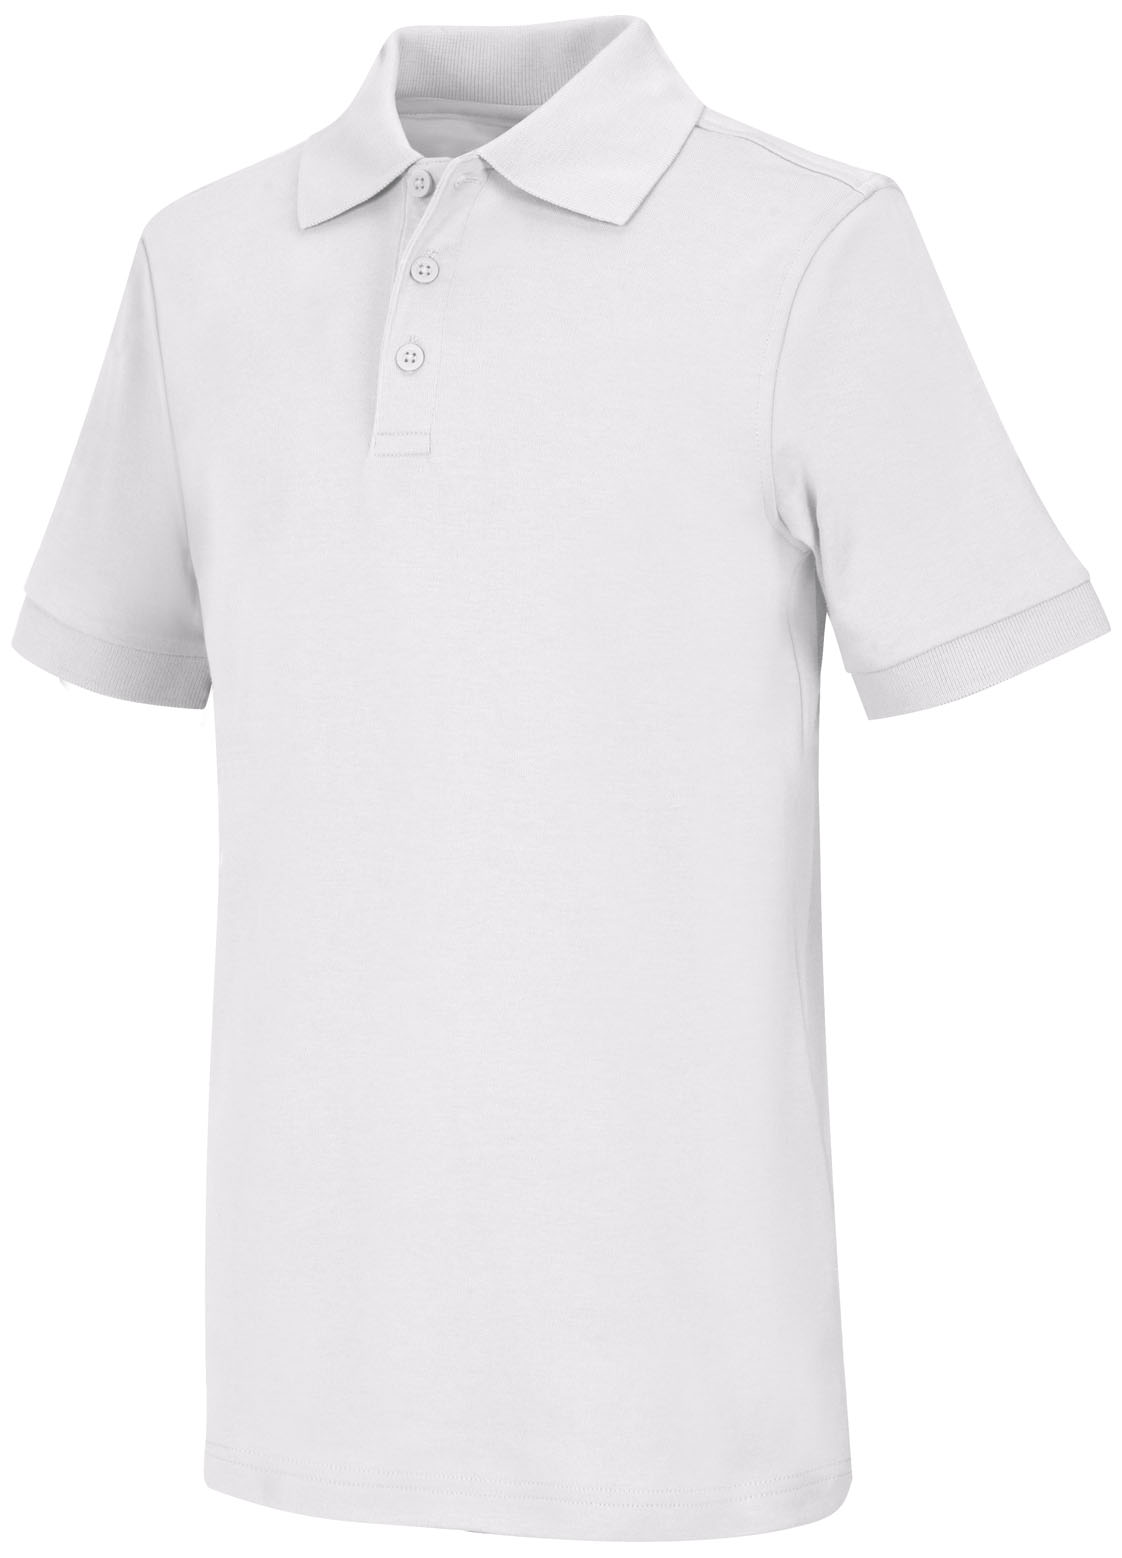 199da66e Classroom Child's Unisex Youth Unisex Short Sleeve Interlock Polo White